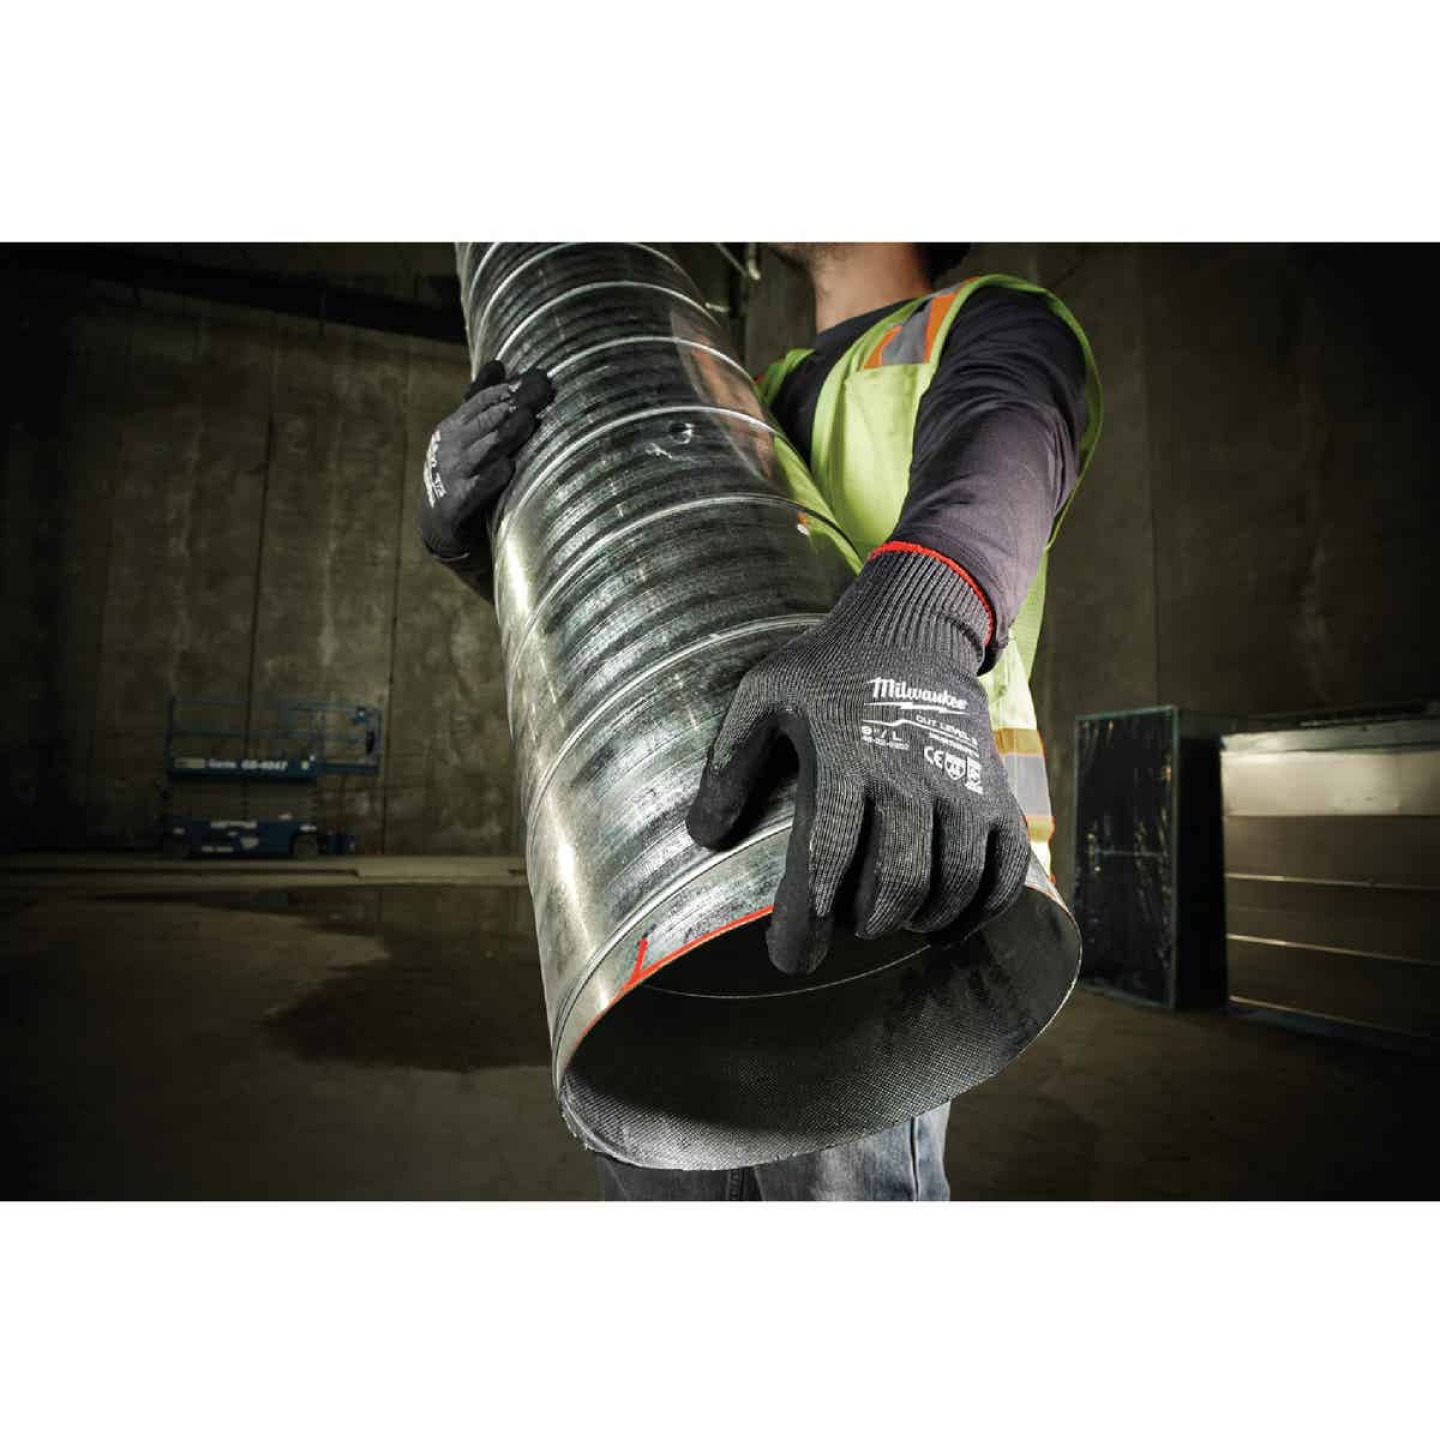 Milwaukee Men's XL Nitrile Coated Cut Level 5 Work Glove Image 5